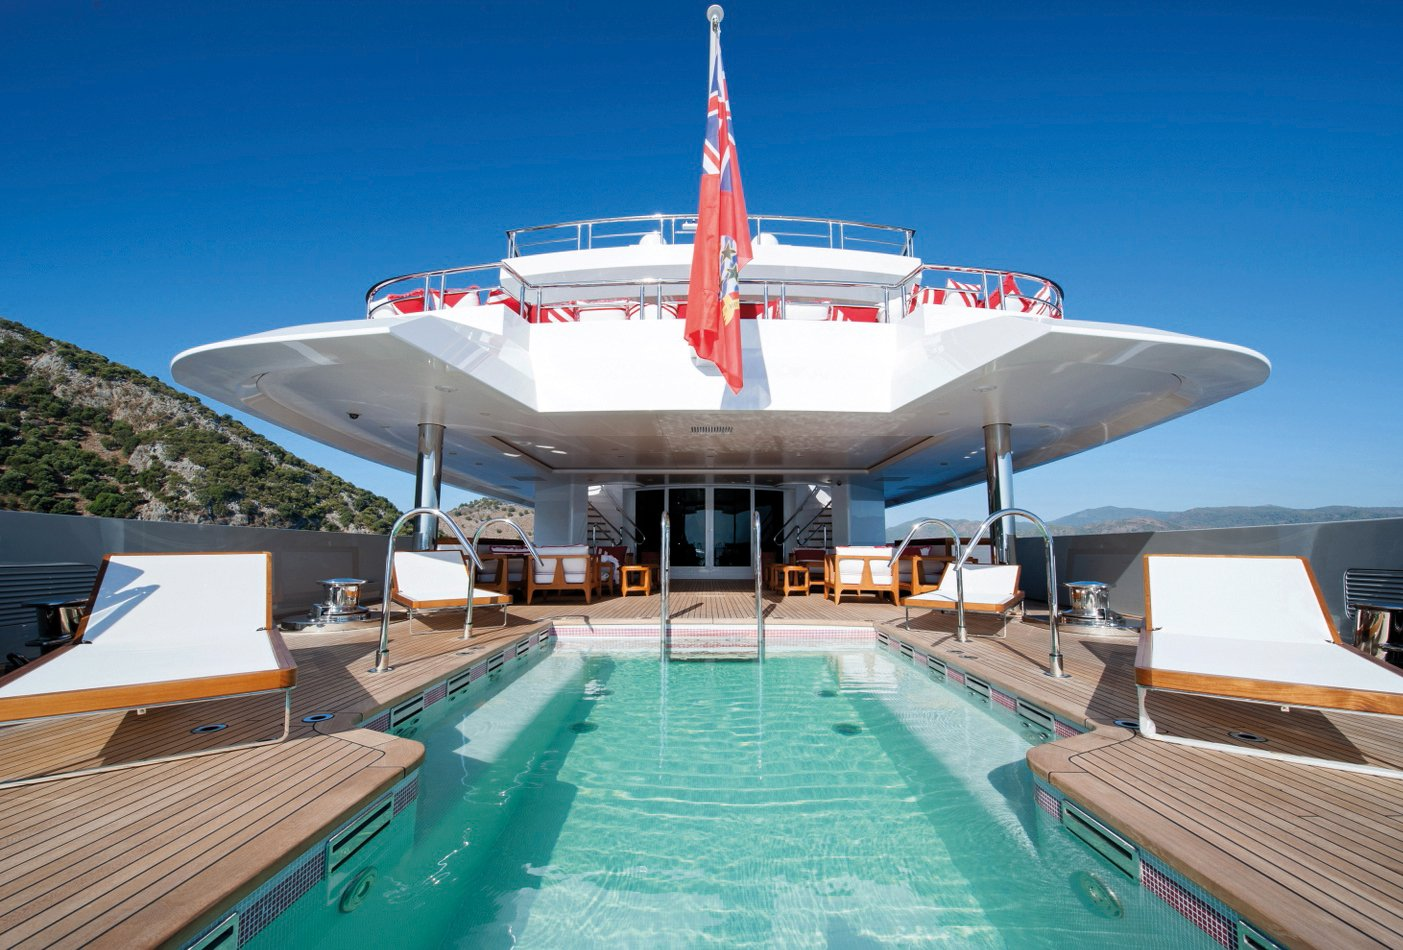 Kendall Jenner Amp Gang Let Loose On 236ft Superyacht Axioma